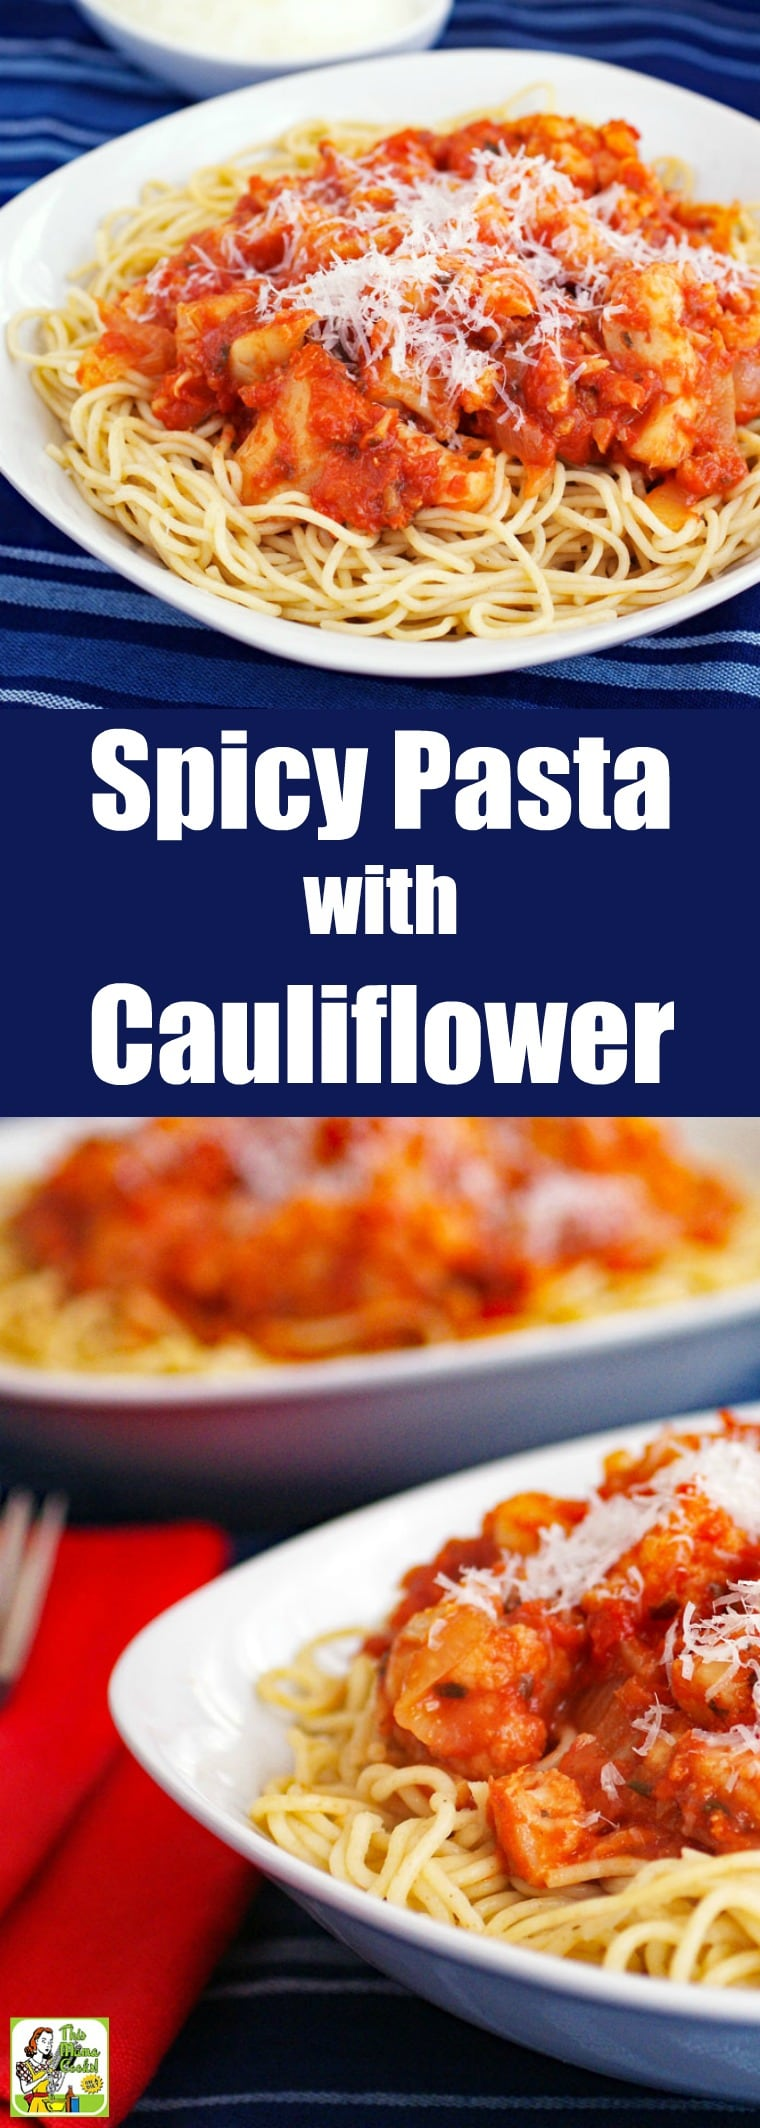 Spicy Pasta with Cauliflower Recipe